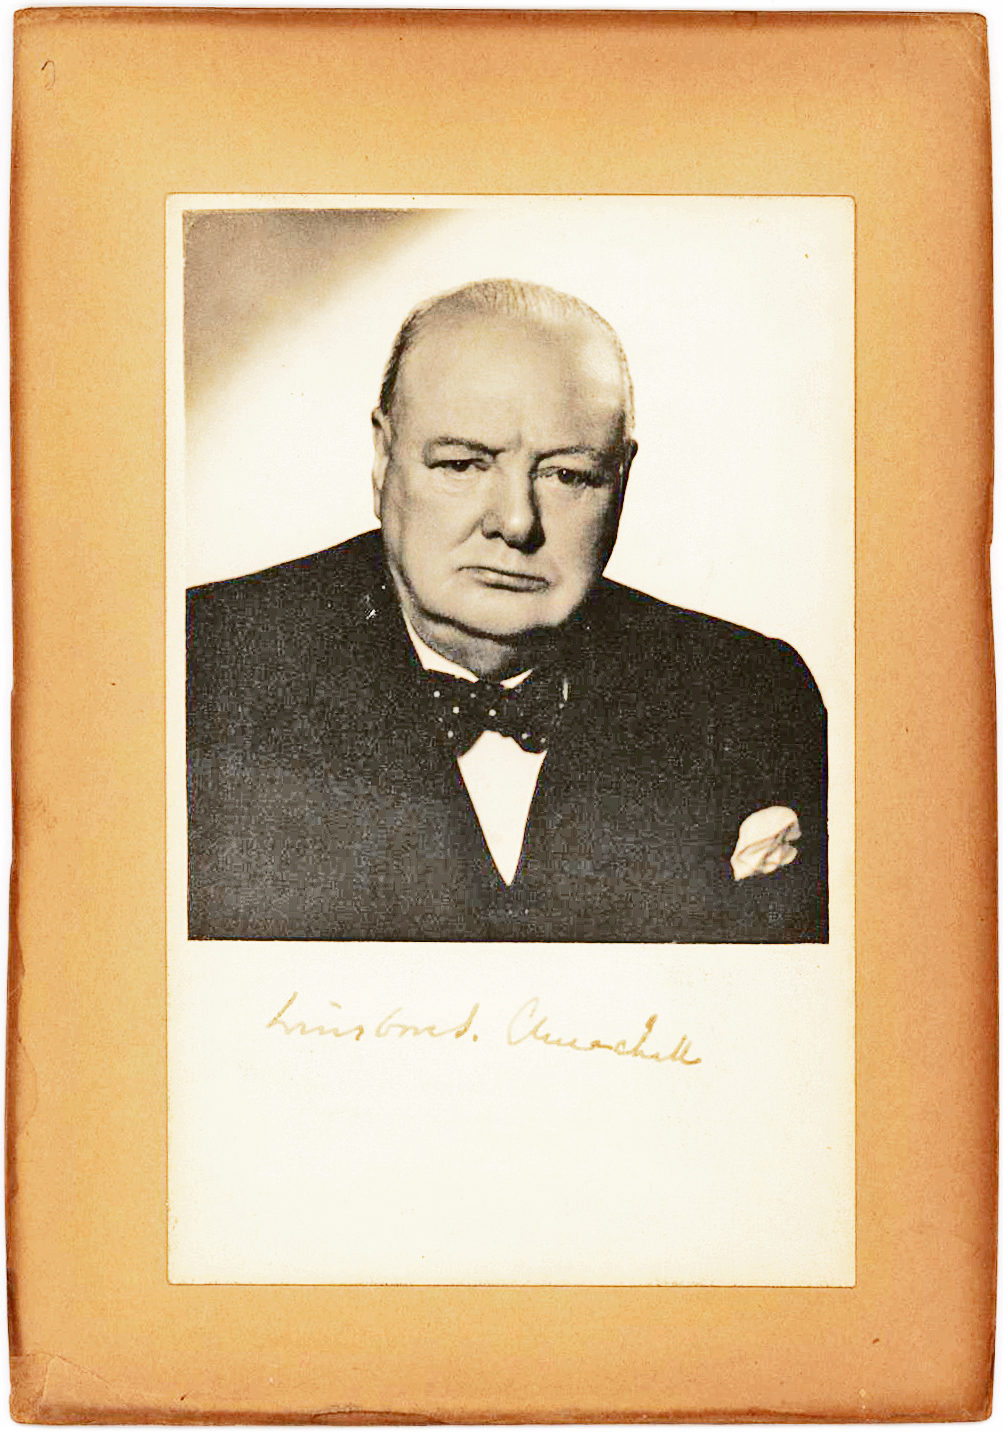 The Classic Signed Portrait Taken by Vivienne